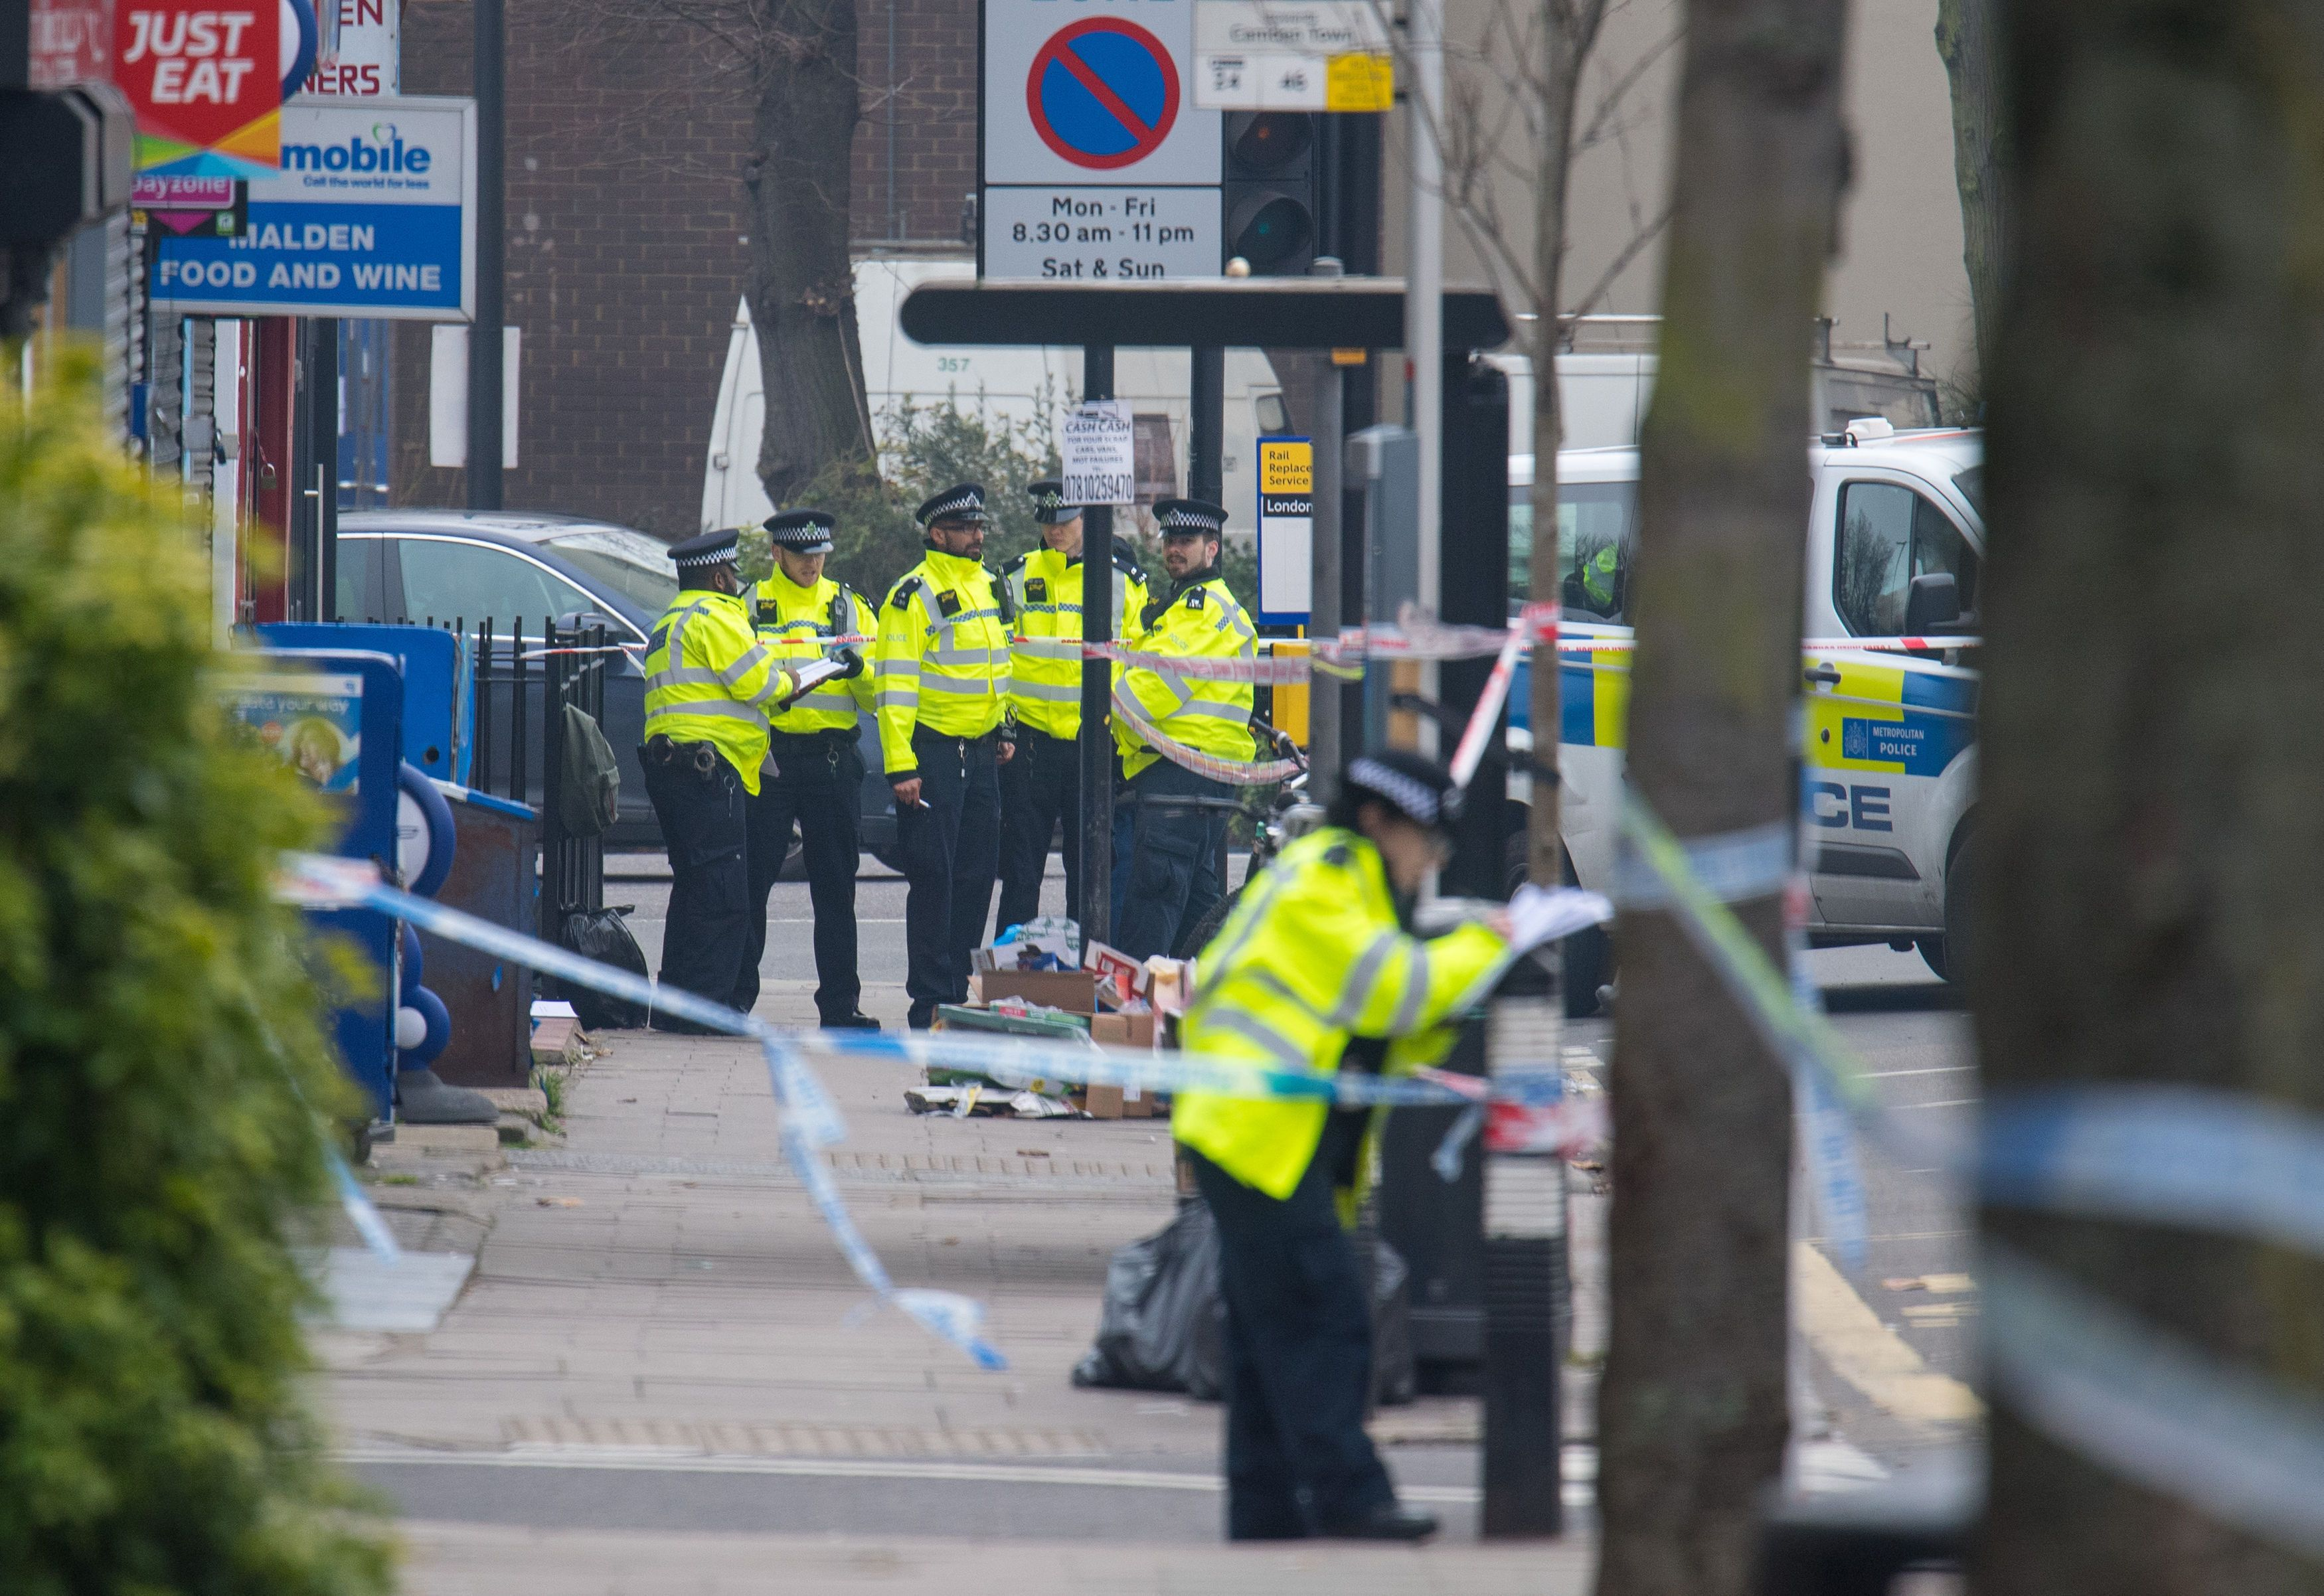 Police are the scene of one of the three stabbings, on Malden Road,